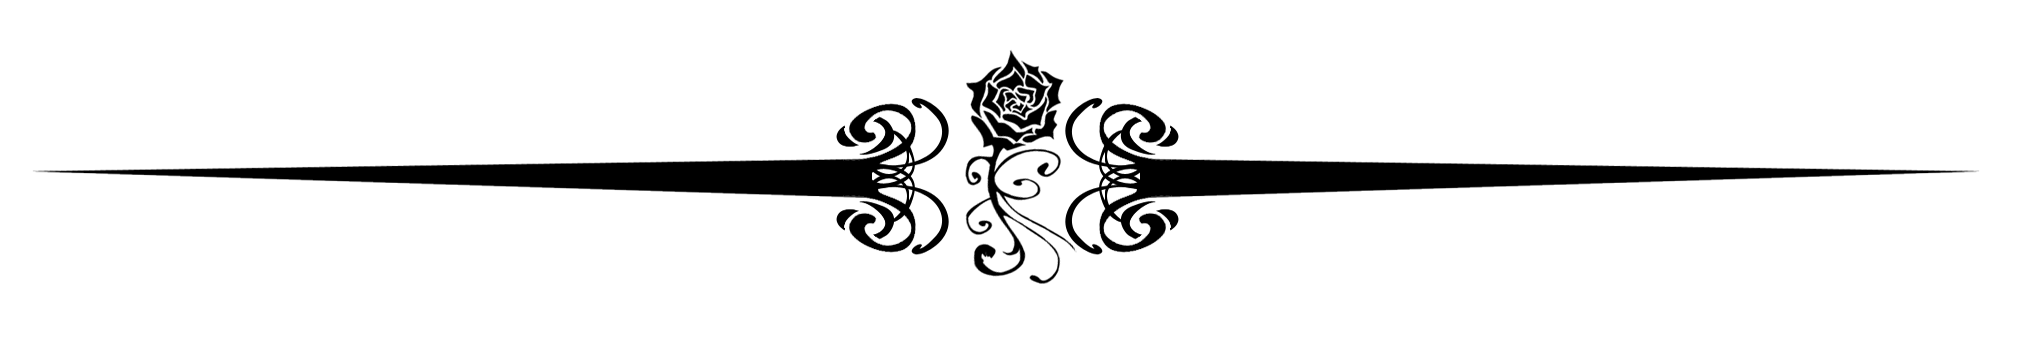 Line design png. Collection of straight